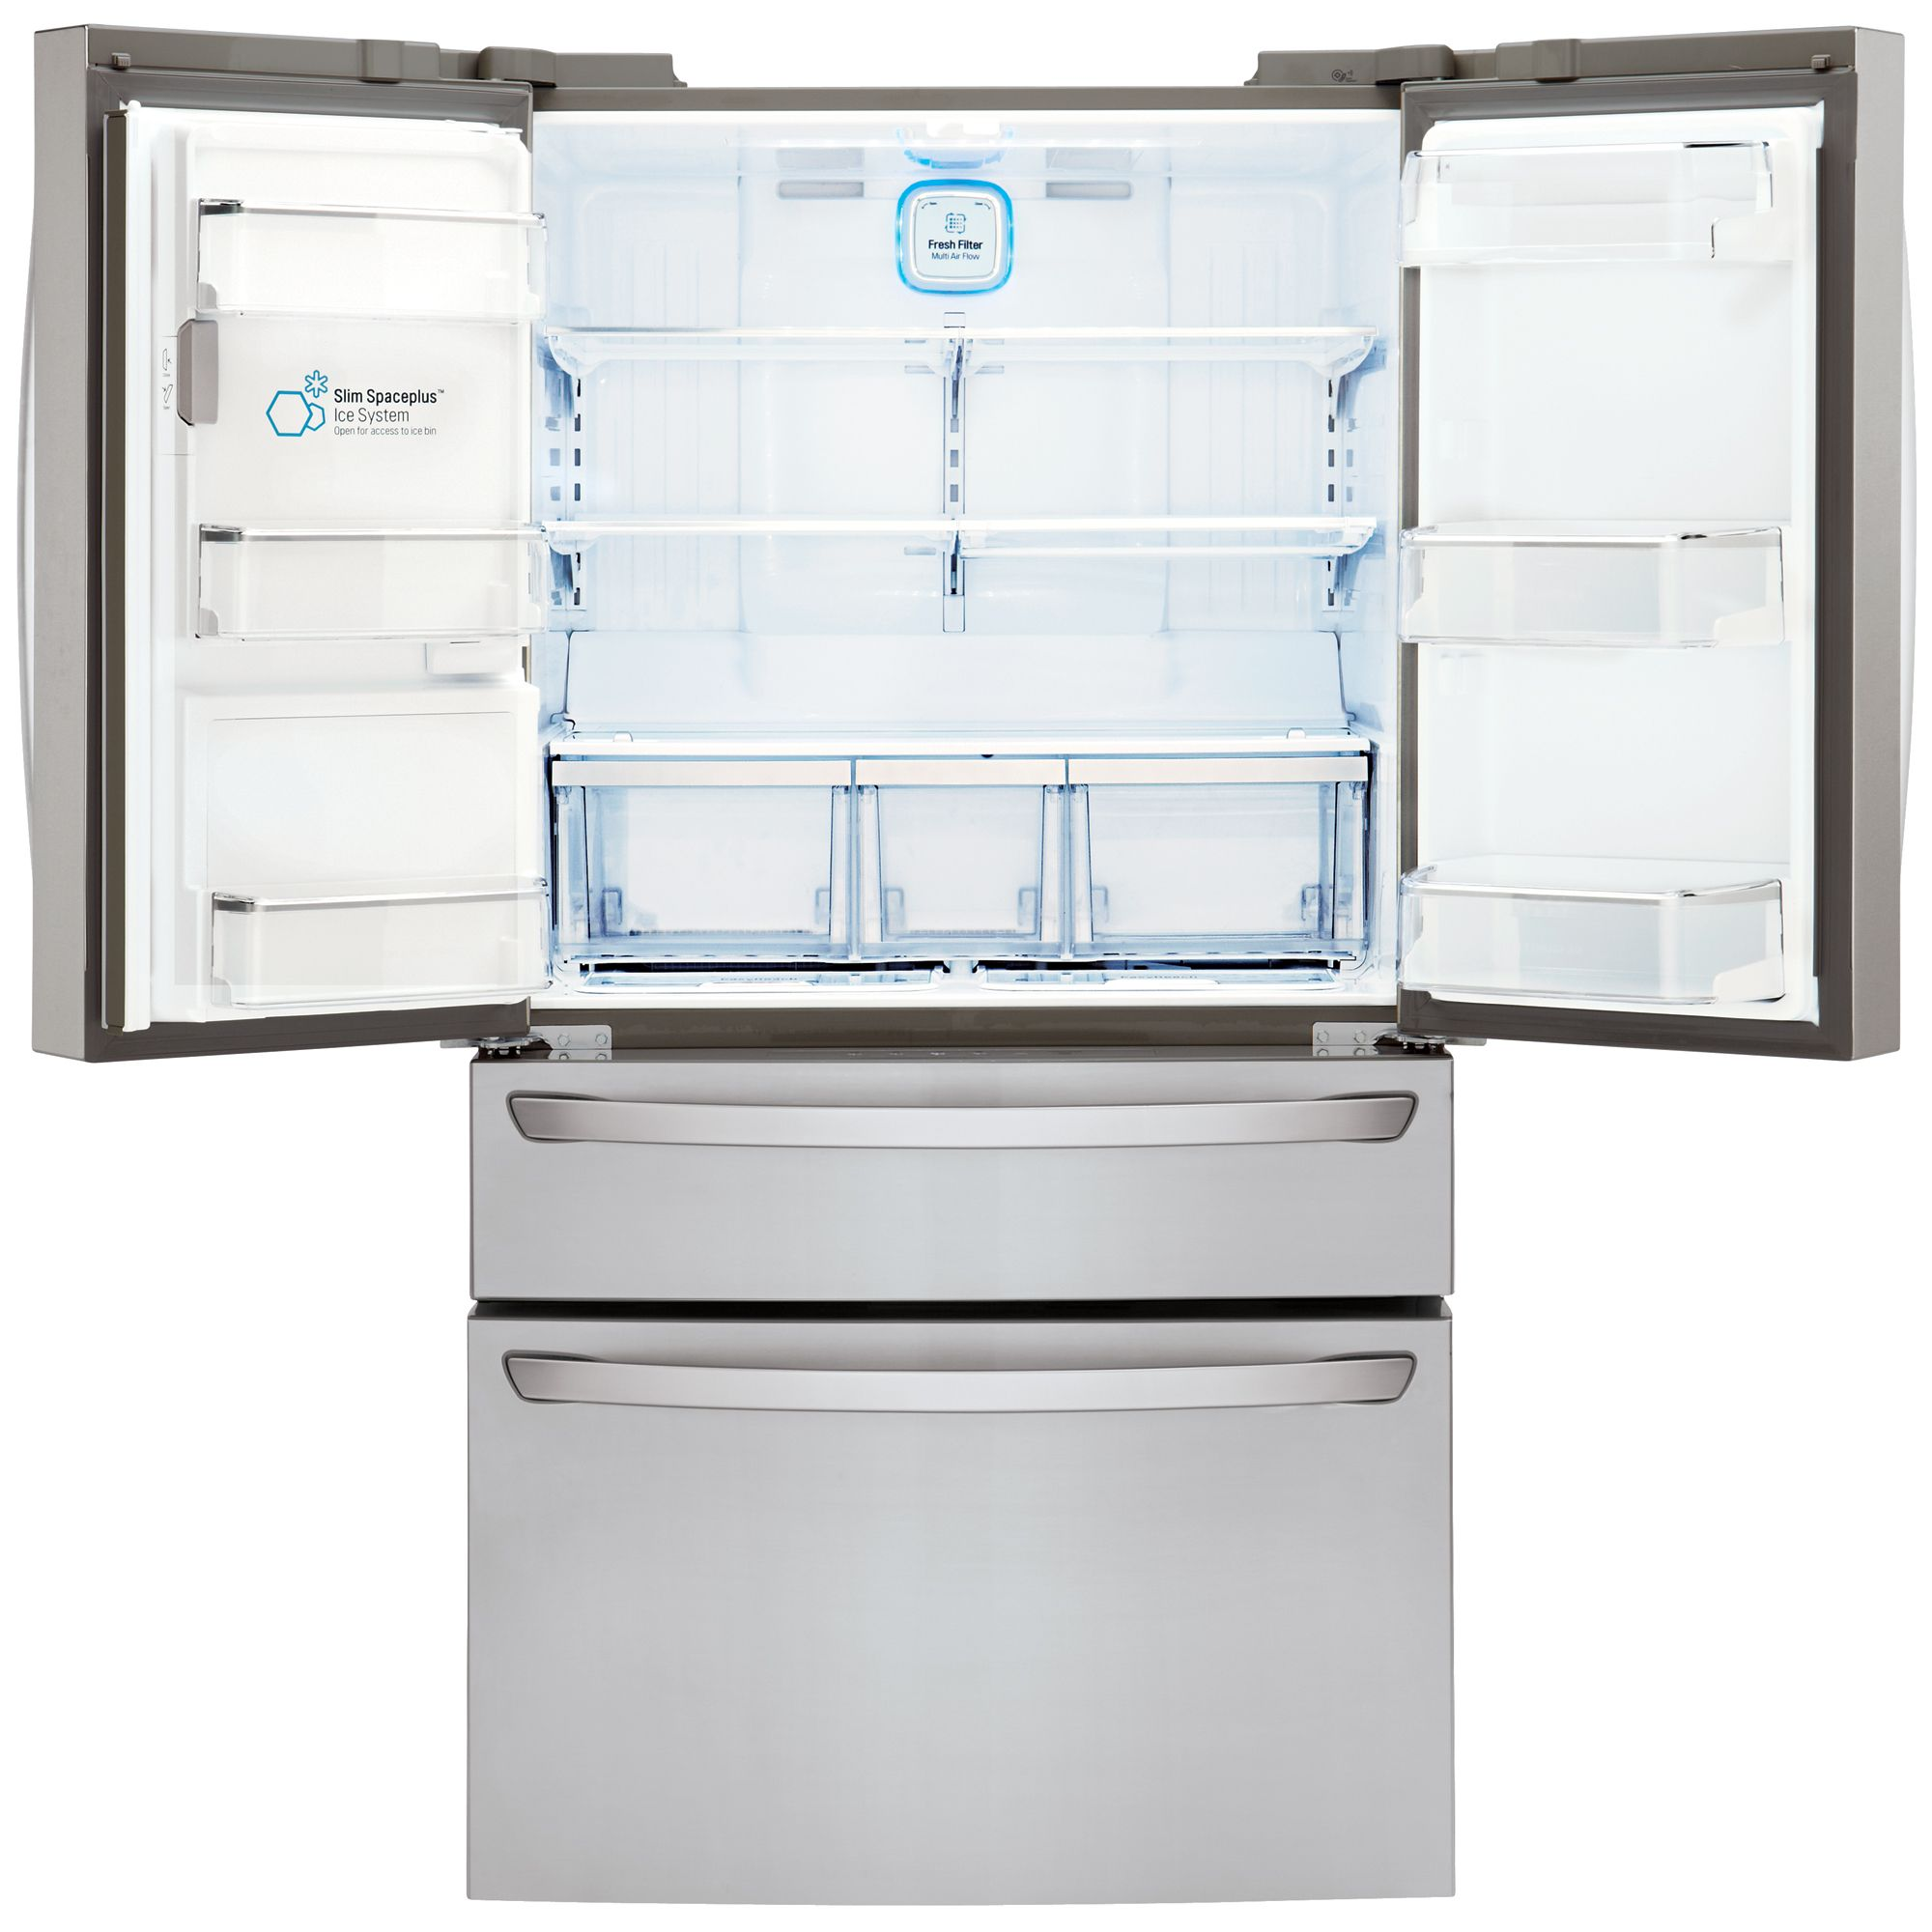 Height To Top Of Case In 68 75 Height To Top Of Hinge In 70 25 Freezer Cap French Door Refrigerator French Doors Stainless Steel French Door Refrigerator